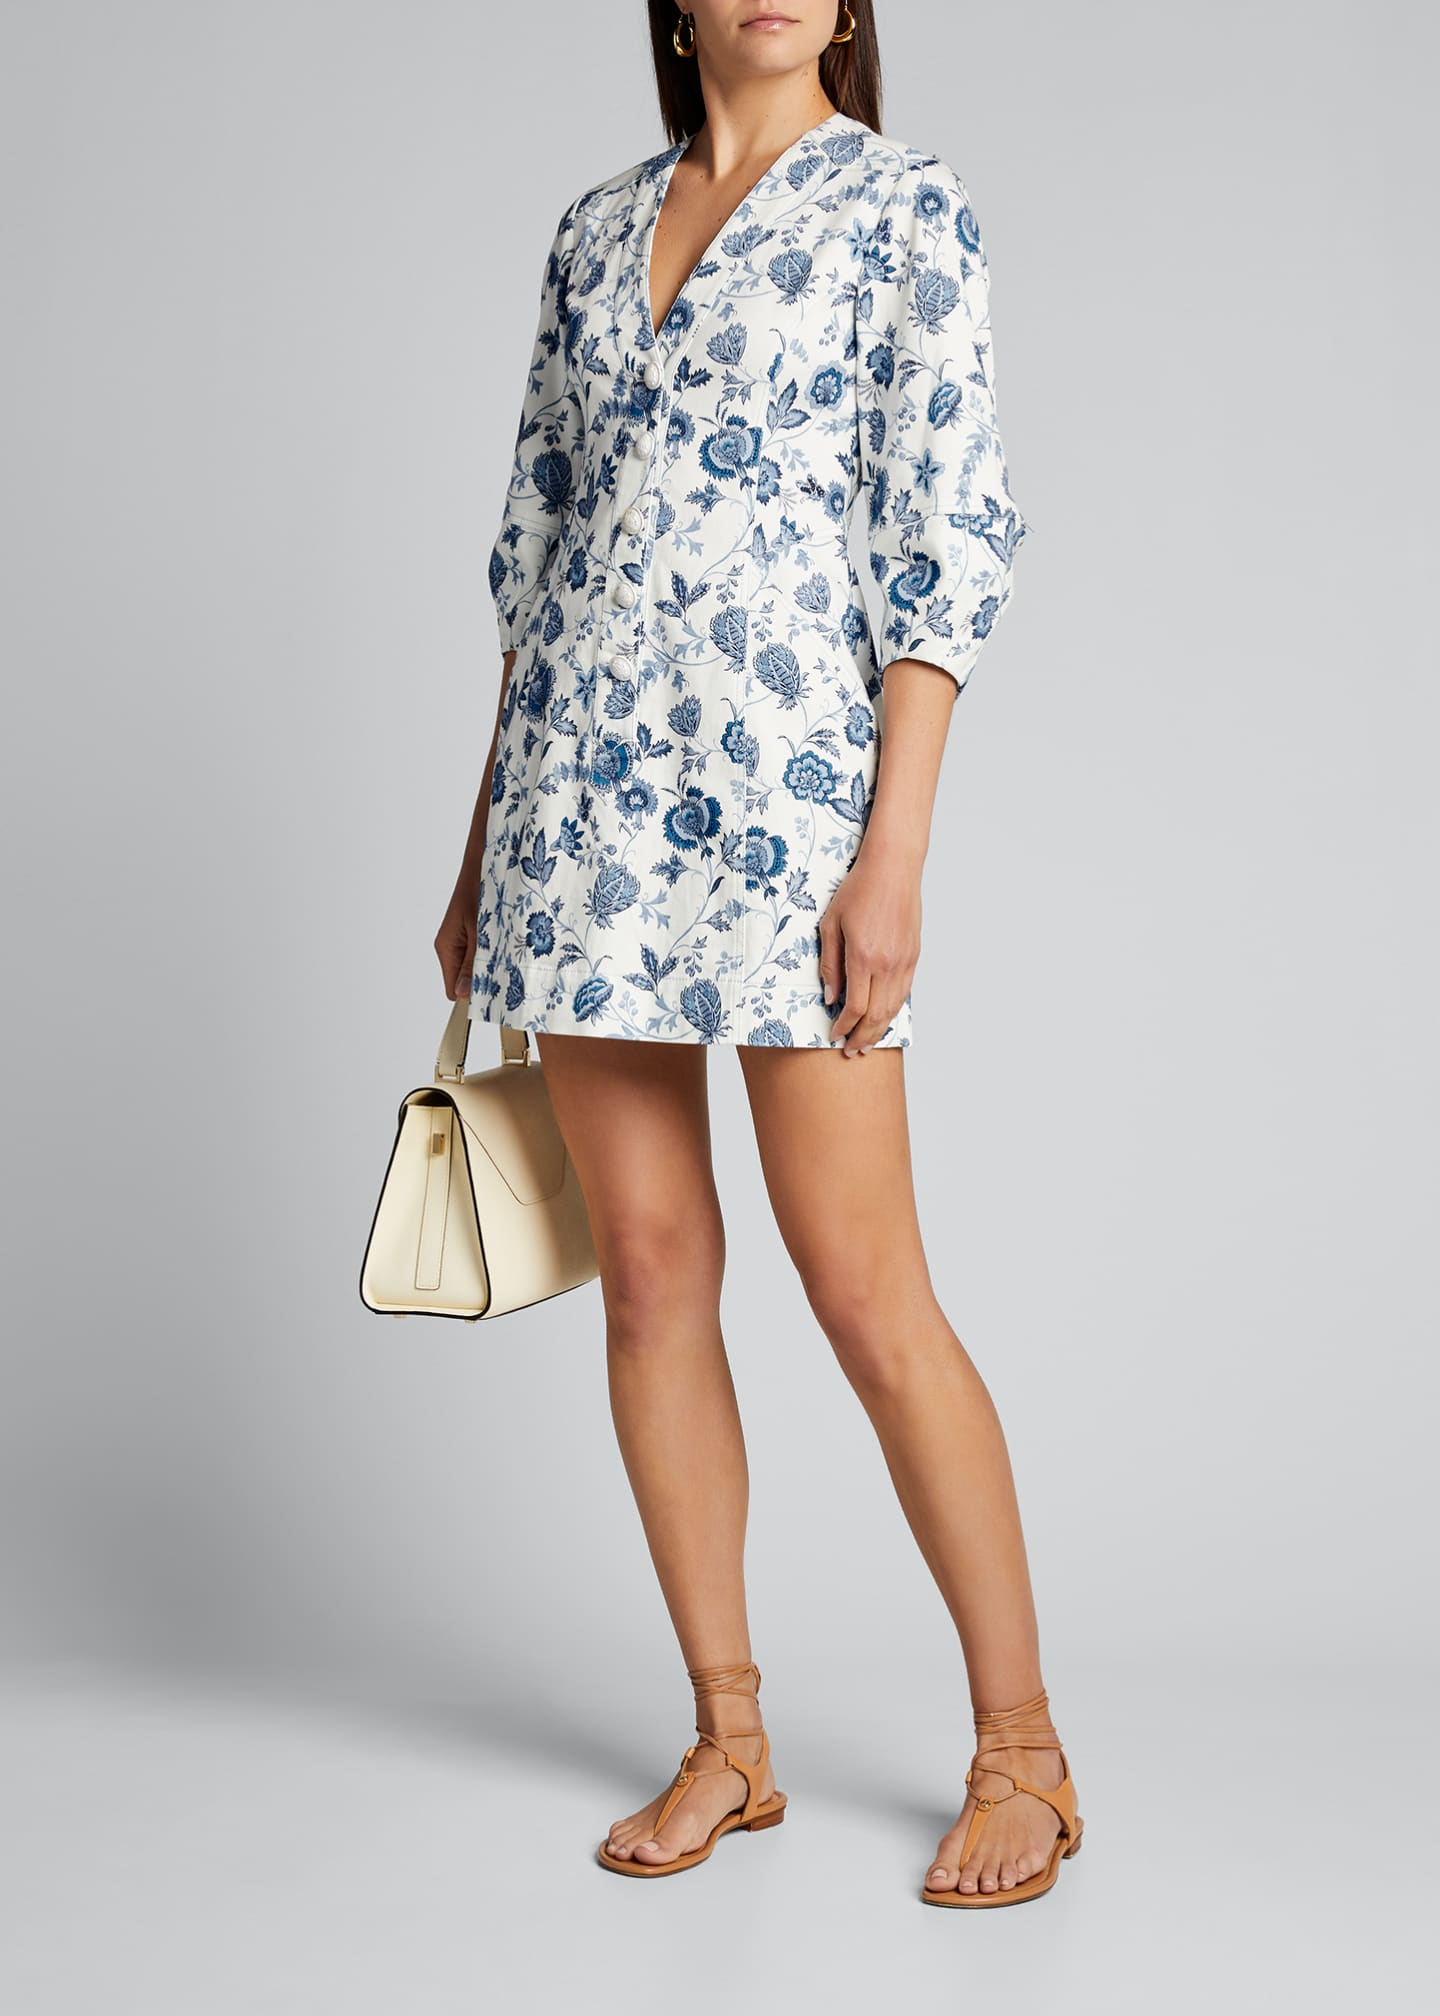 Image 1 of 5: Ottilie Floral Print 3/4-Sleeve Dress